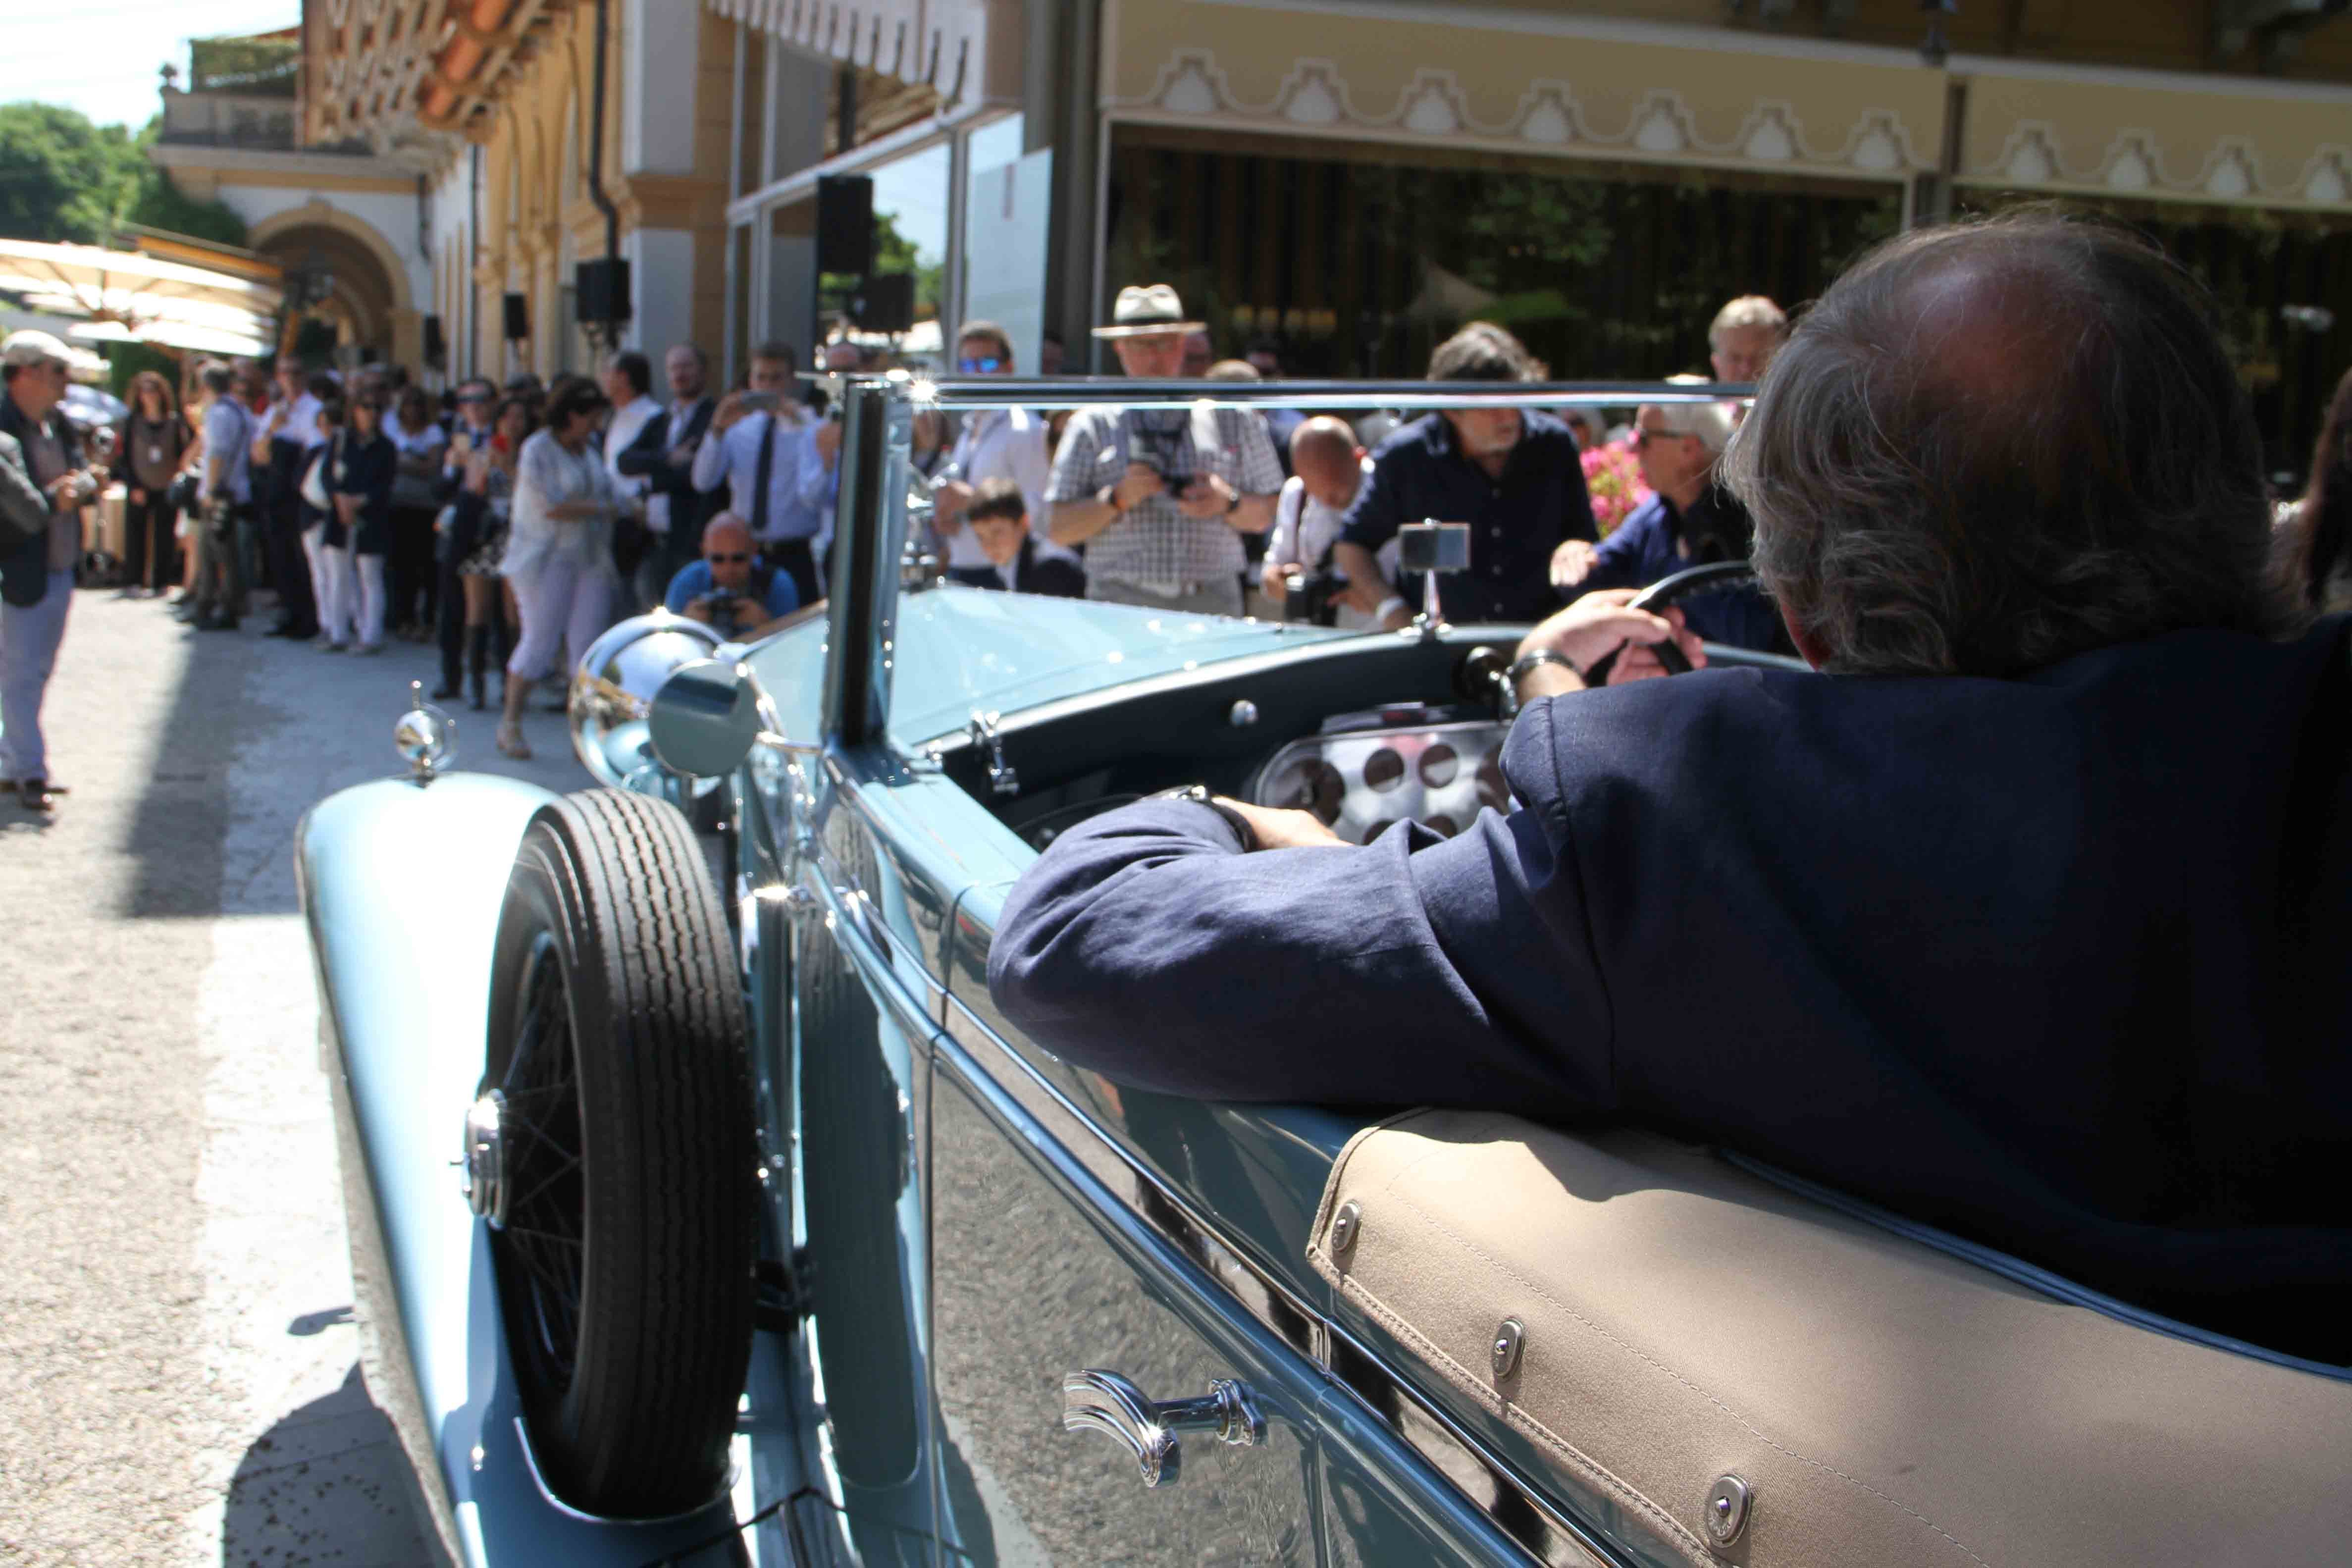 Rolls-Royce Phantom II Continental, 1934.  Photo Report: Watch And Car Spotting At The 2016 Concorso d'Eleganza Villa d'Este With A. Lange & Söhne Photo Report: Watch And Car Spotting At The 2016 Concorso d'Eleganza Villa d'Este With A. Lange & Söhne IMG 5425